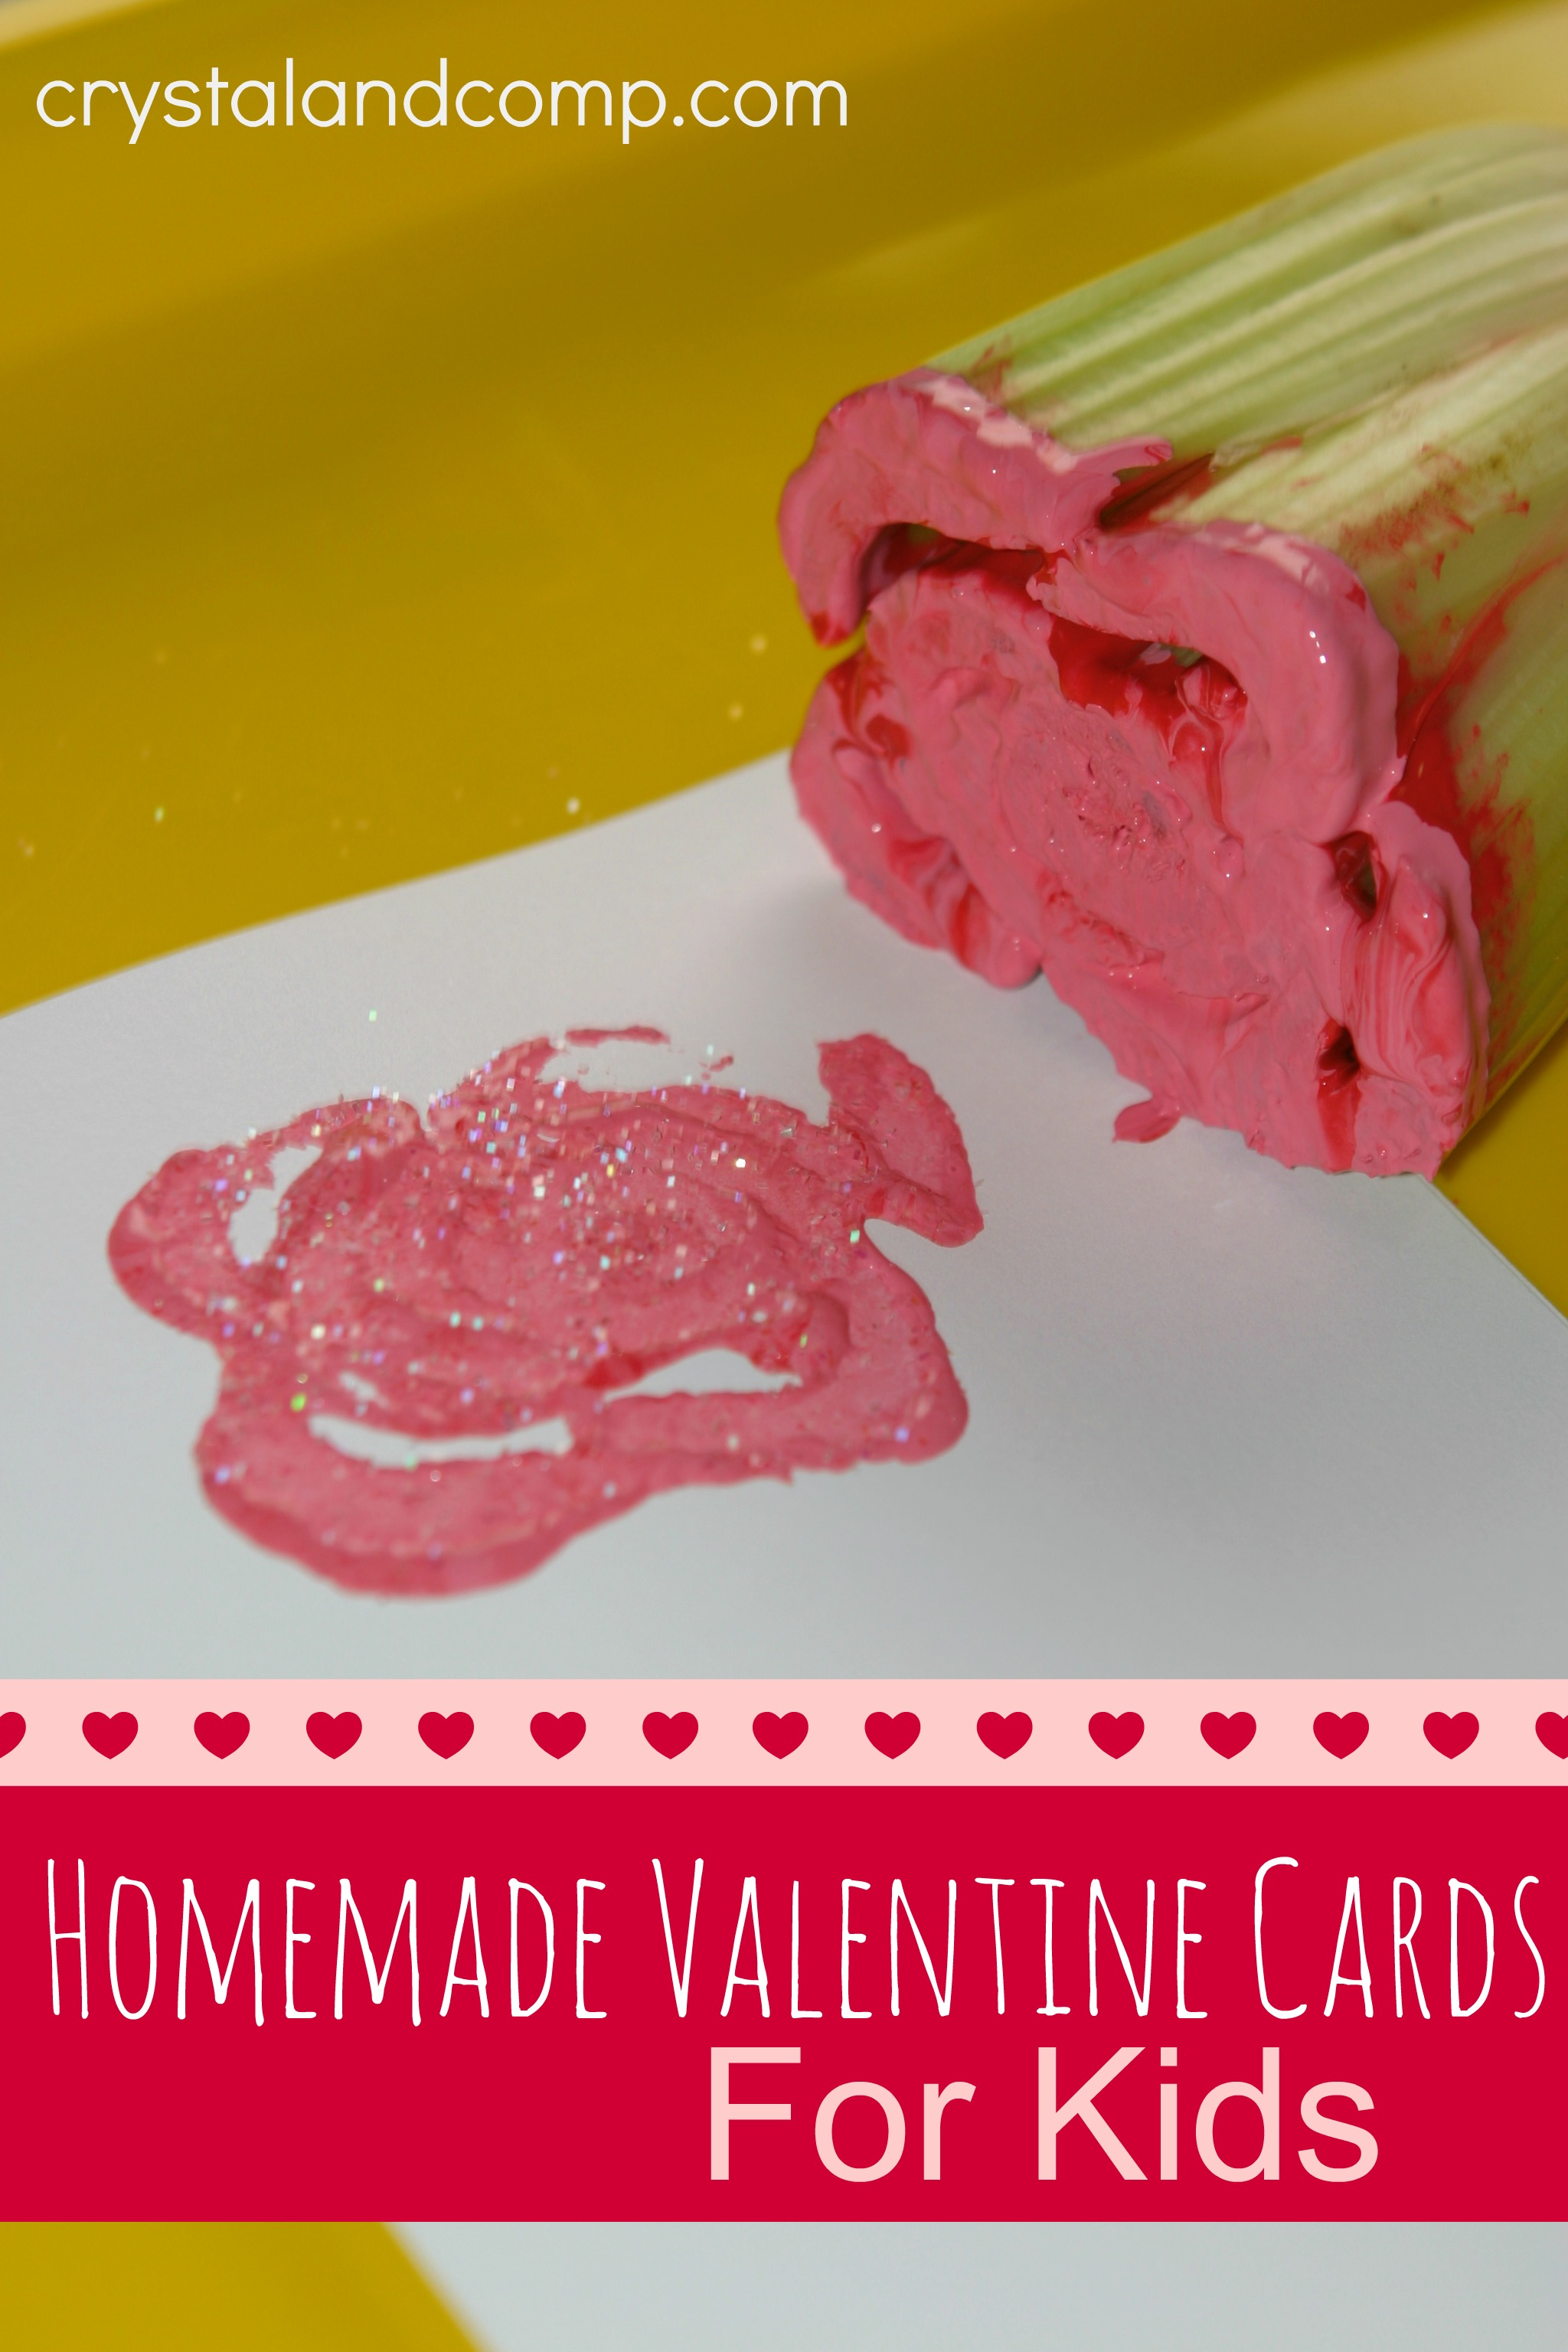 Homemade Valentine Cards for Kids – Valentines Cards from Kids